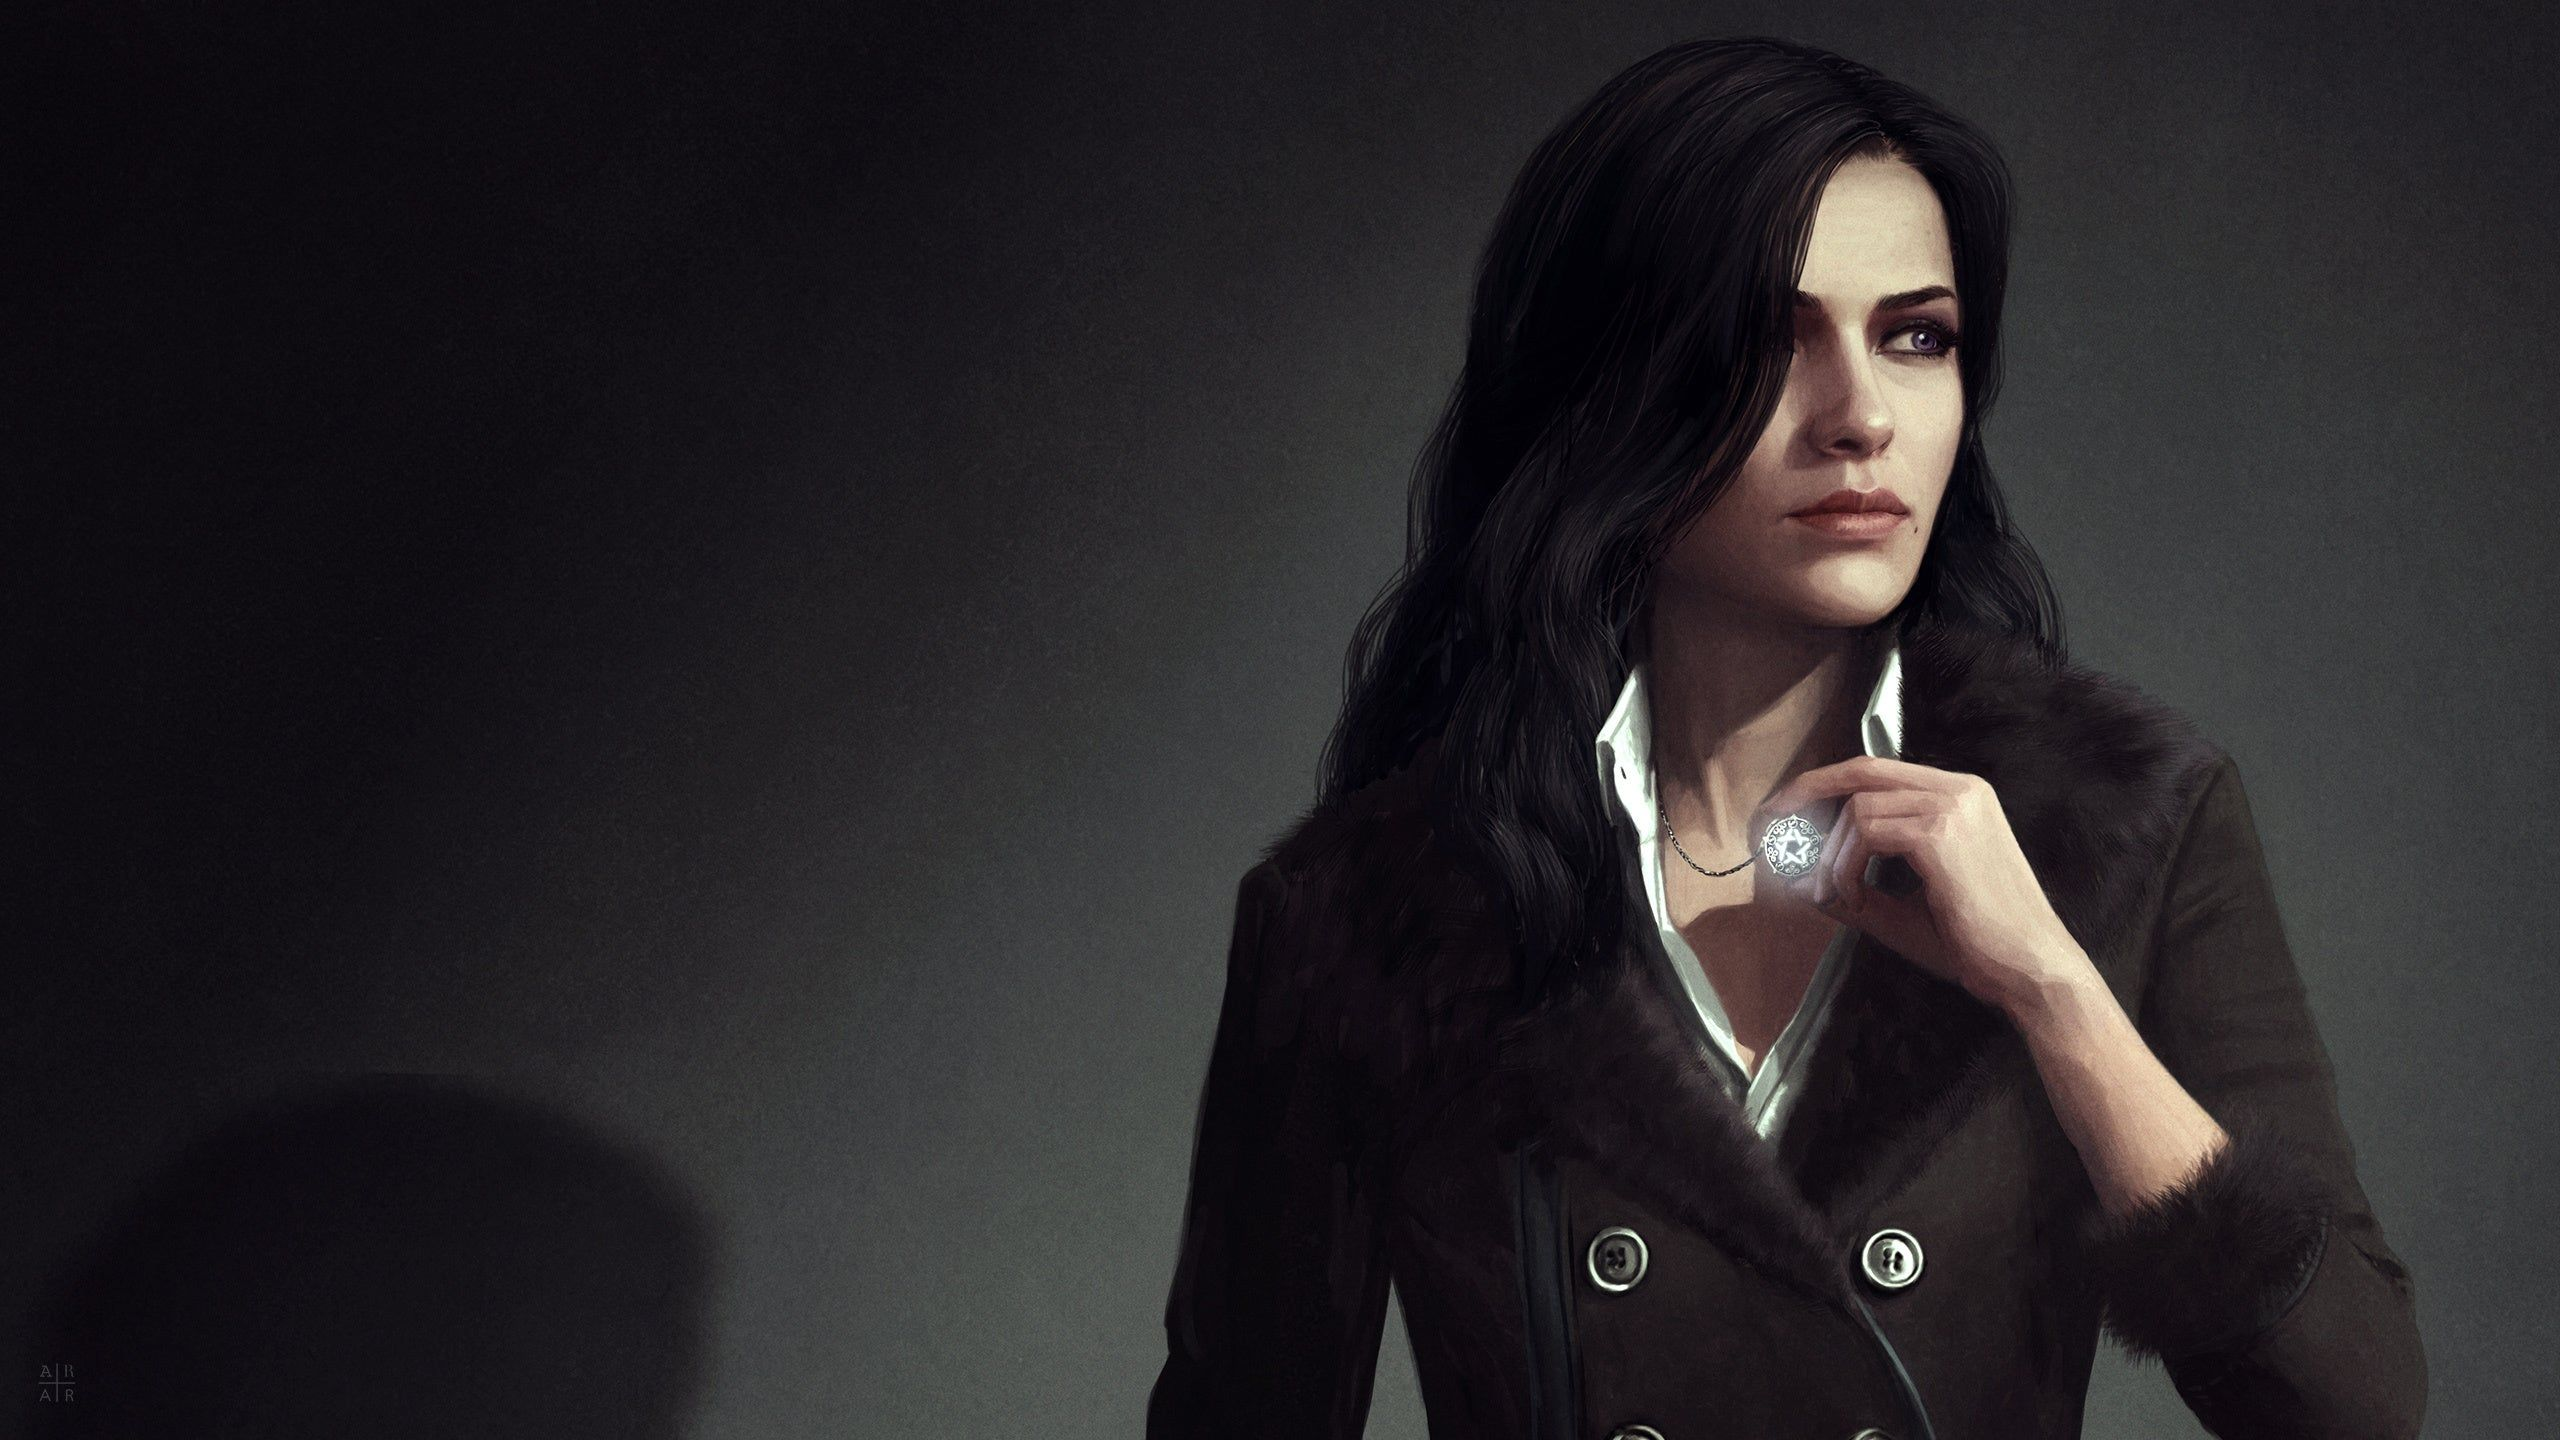 Yennefer Hd Wallpaper The Witcher The Witcher 3 Witcher 3 Wild Hunt